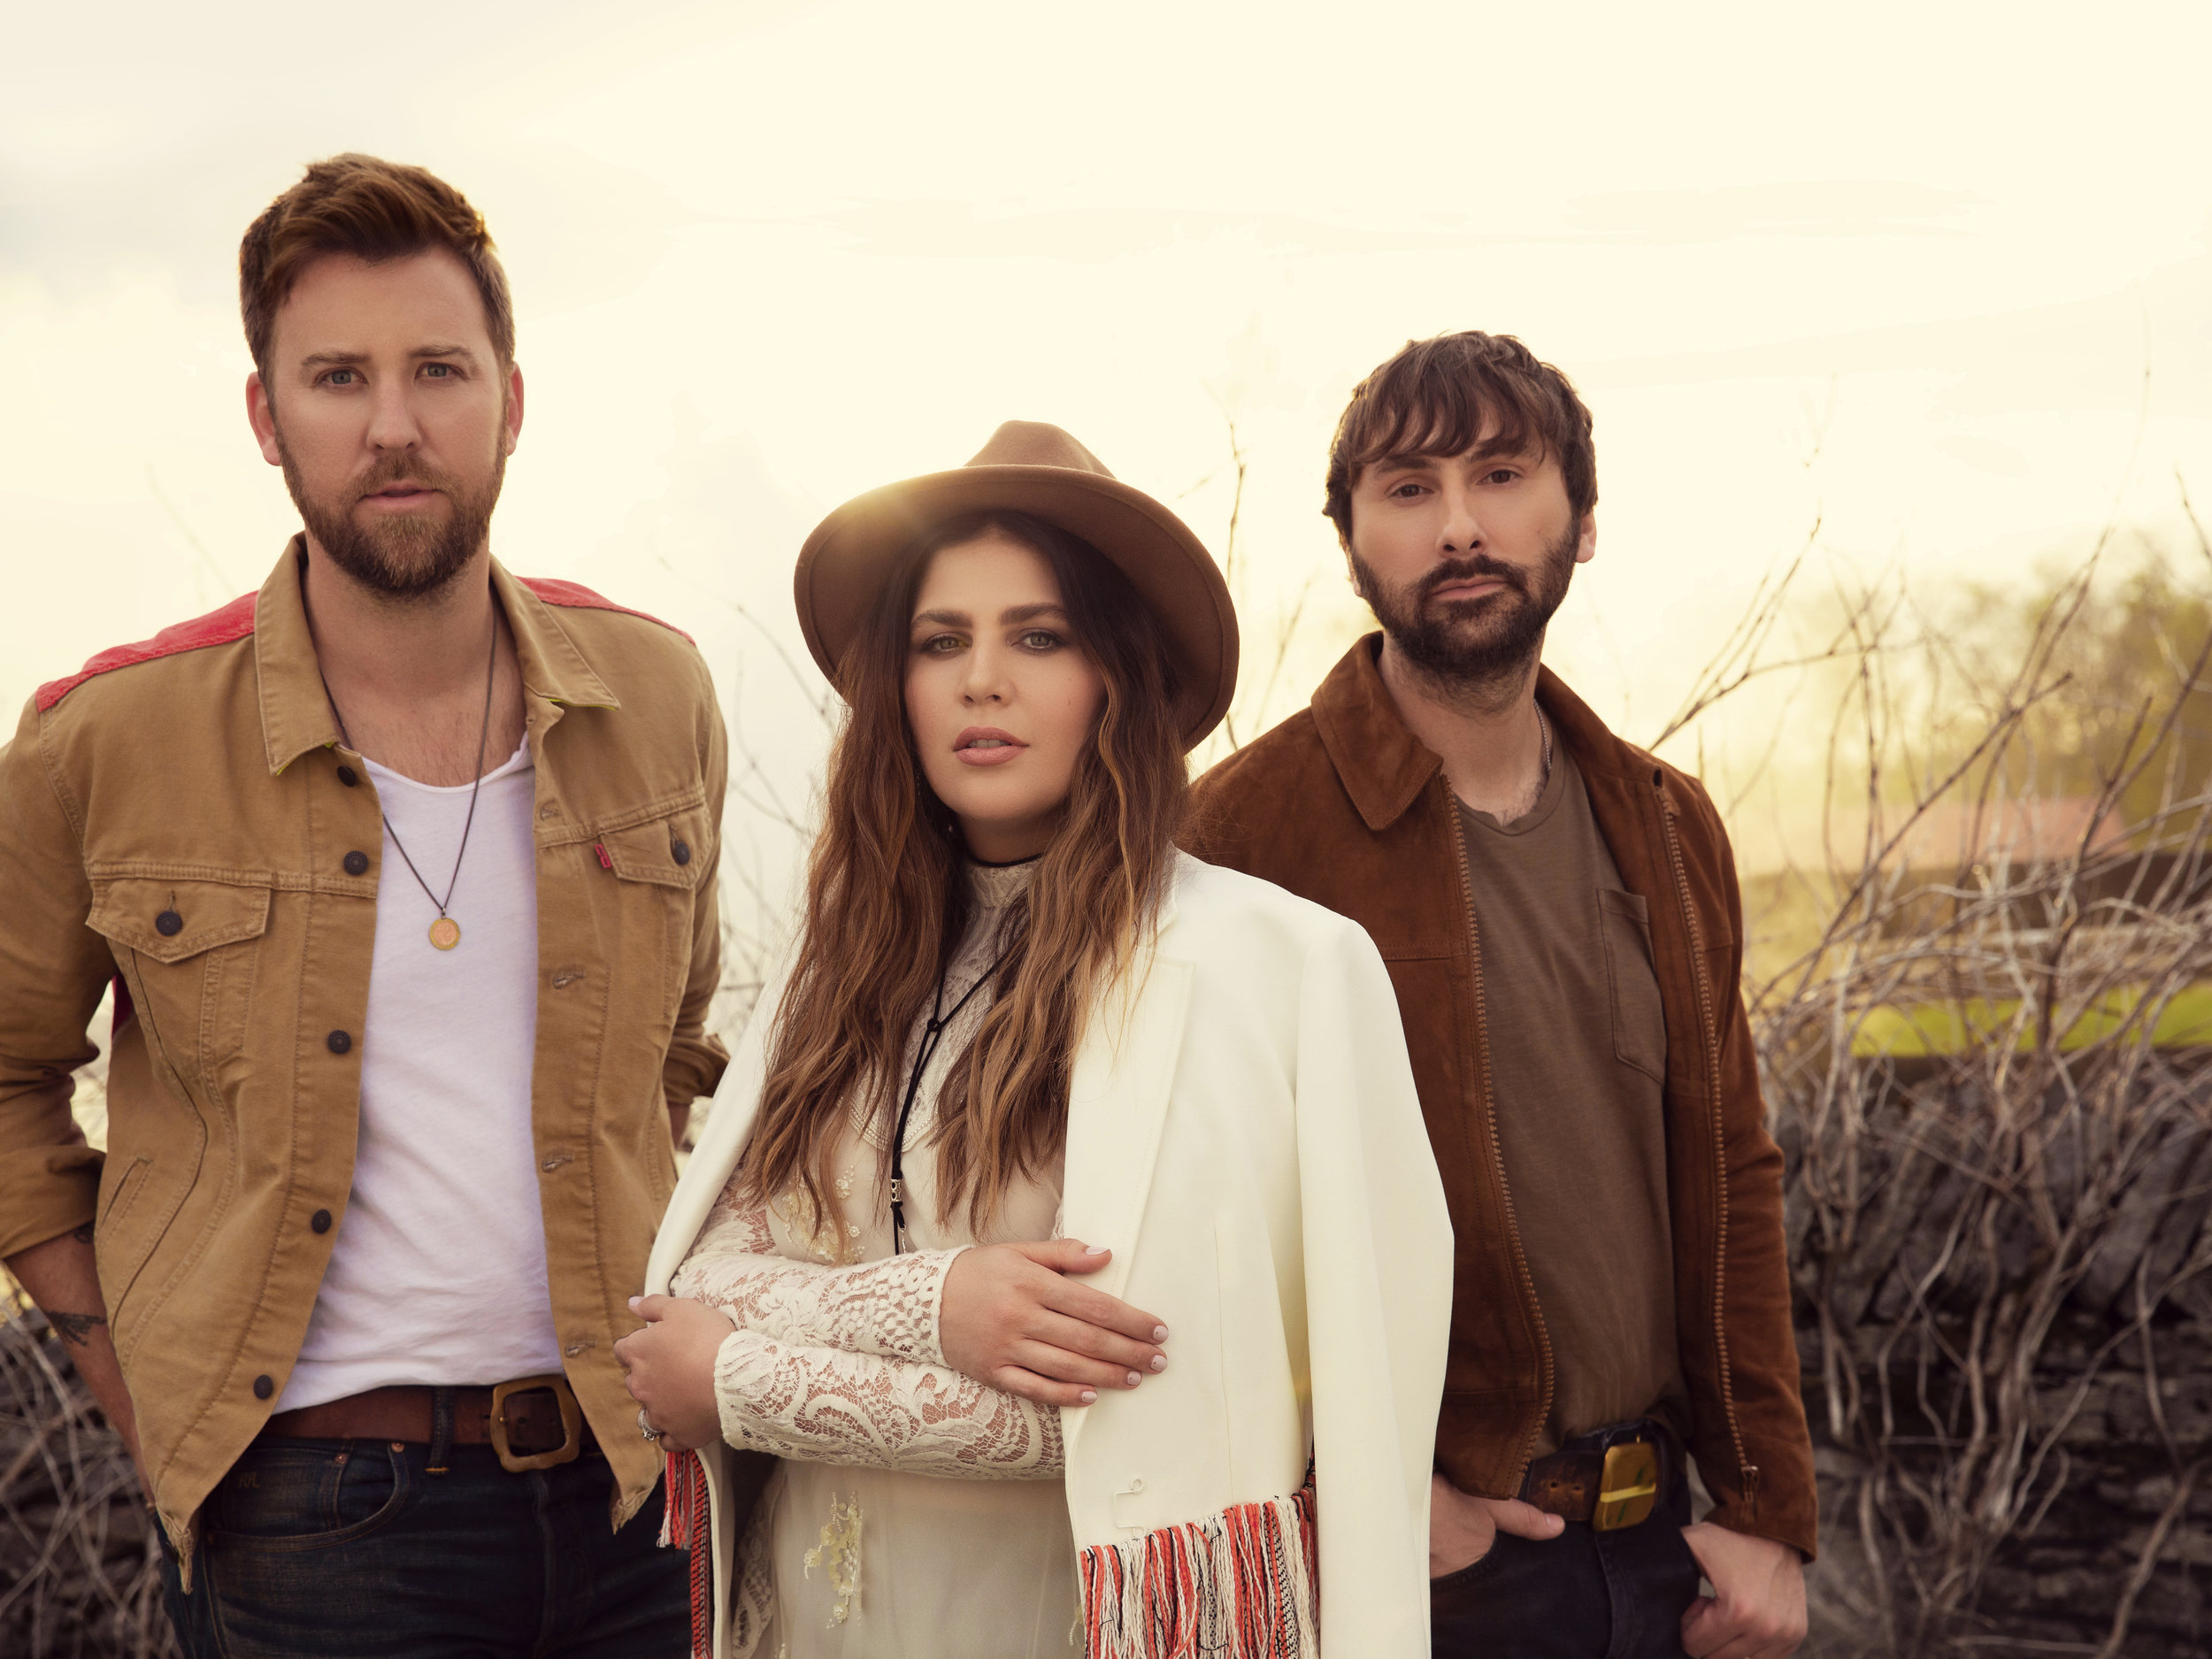 "LADY ANTEBELLUM - Lady Antebellum has become one of the 21st century's premier vocal groups, recently releasing the haunting ""What If I Never Get Over You."" Now the most-added single upon release of their career, the new track blends deeply felt emotions with classic country sounds. As a Country-radio staple, the trio has amassed record-breaking success with nine No. One hits while ushering in more than 18 million album units and 34 million tracks sold, with over four billion digital streams. Known for their 9X PLATINUM hit ""Need You Now,"" they have earned ACM and CMA"